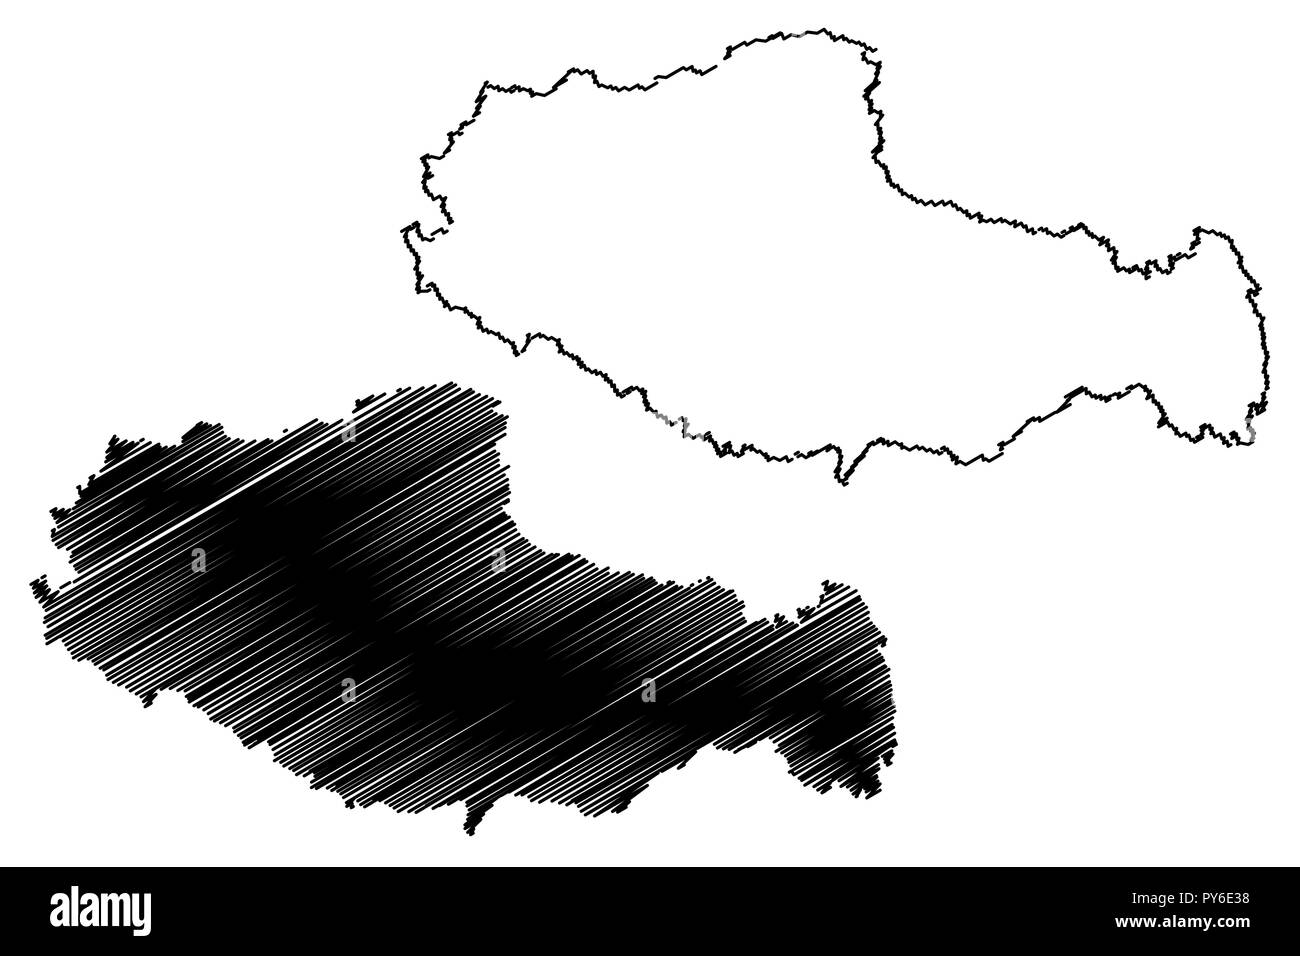 Tibet Autonomous Region (Administrative divisions of China, China, People's Republic of China, PRC) map vector illustration, scribble sketch Xizang Au - Stock Vector